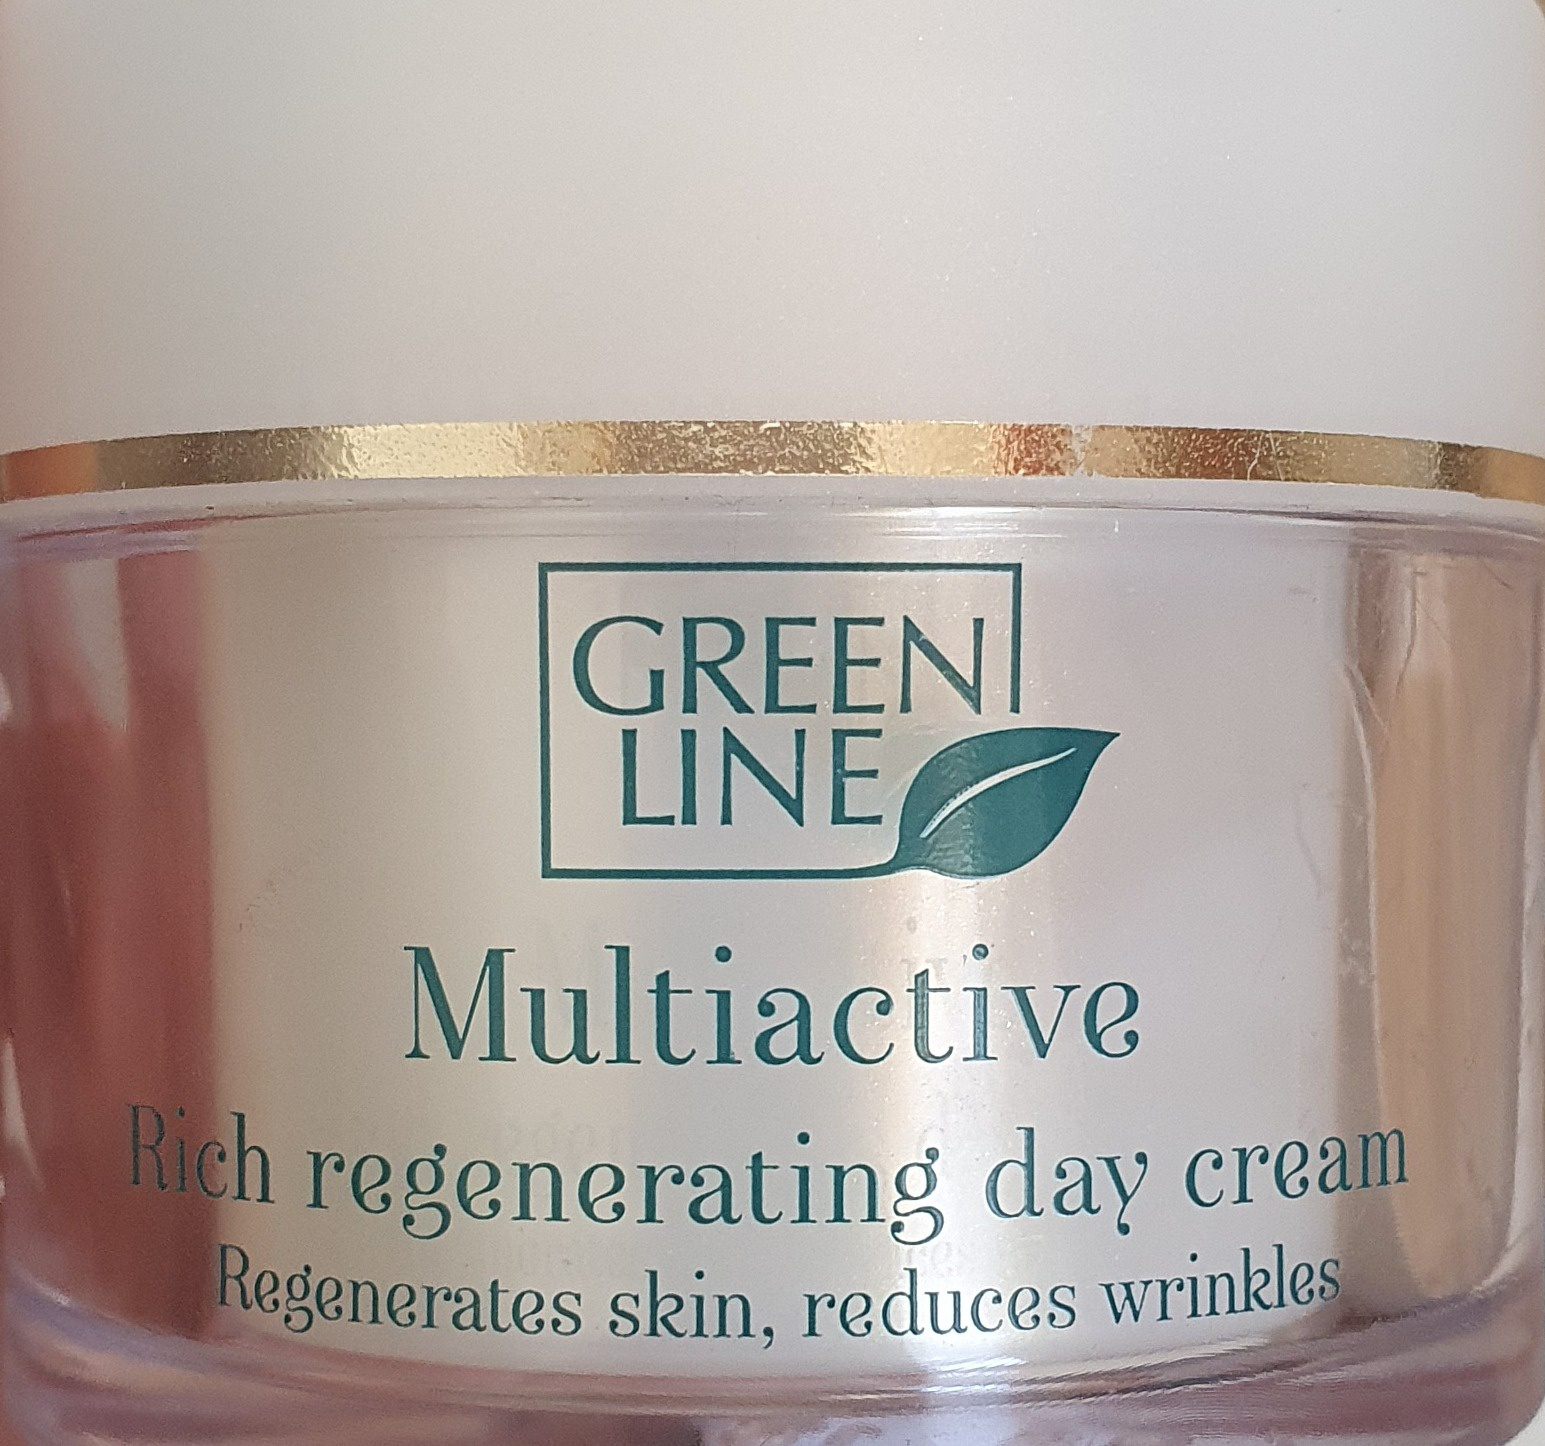 Green line Multiactive